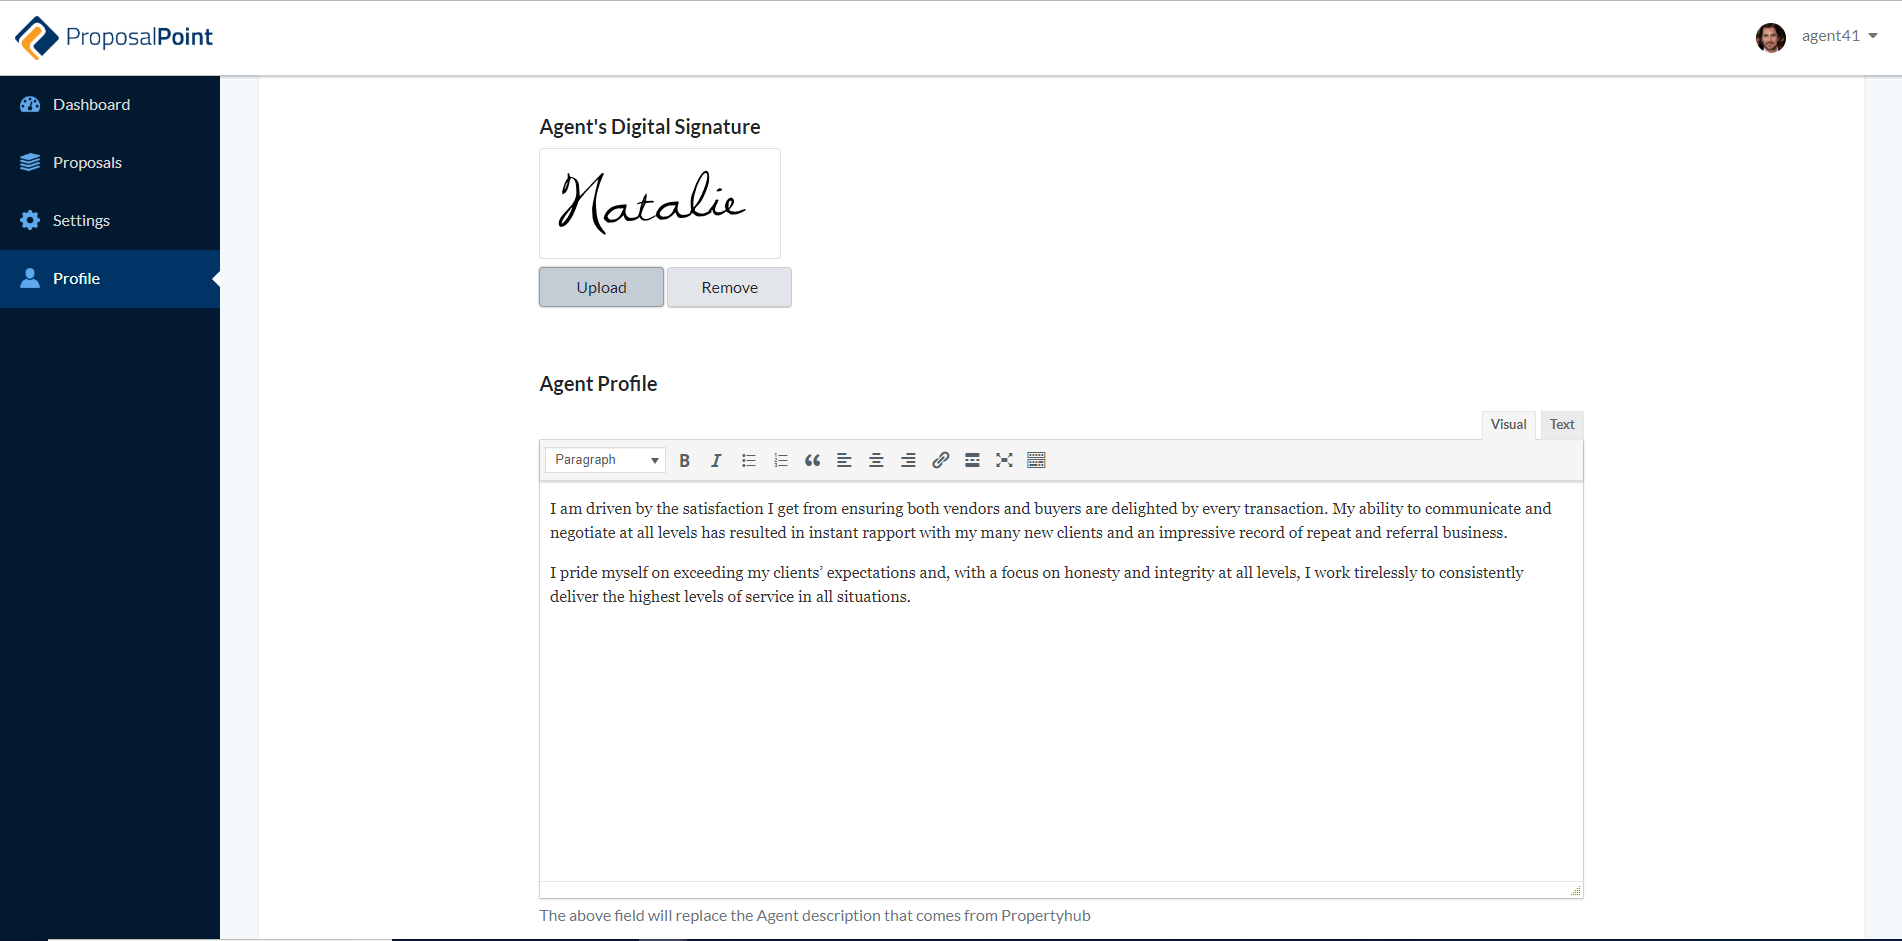 New Feature: Add Signature Image to Profile